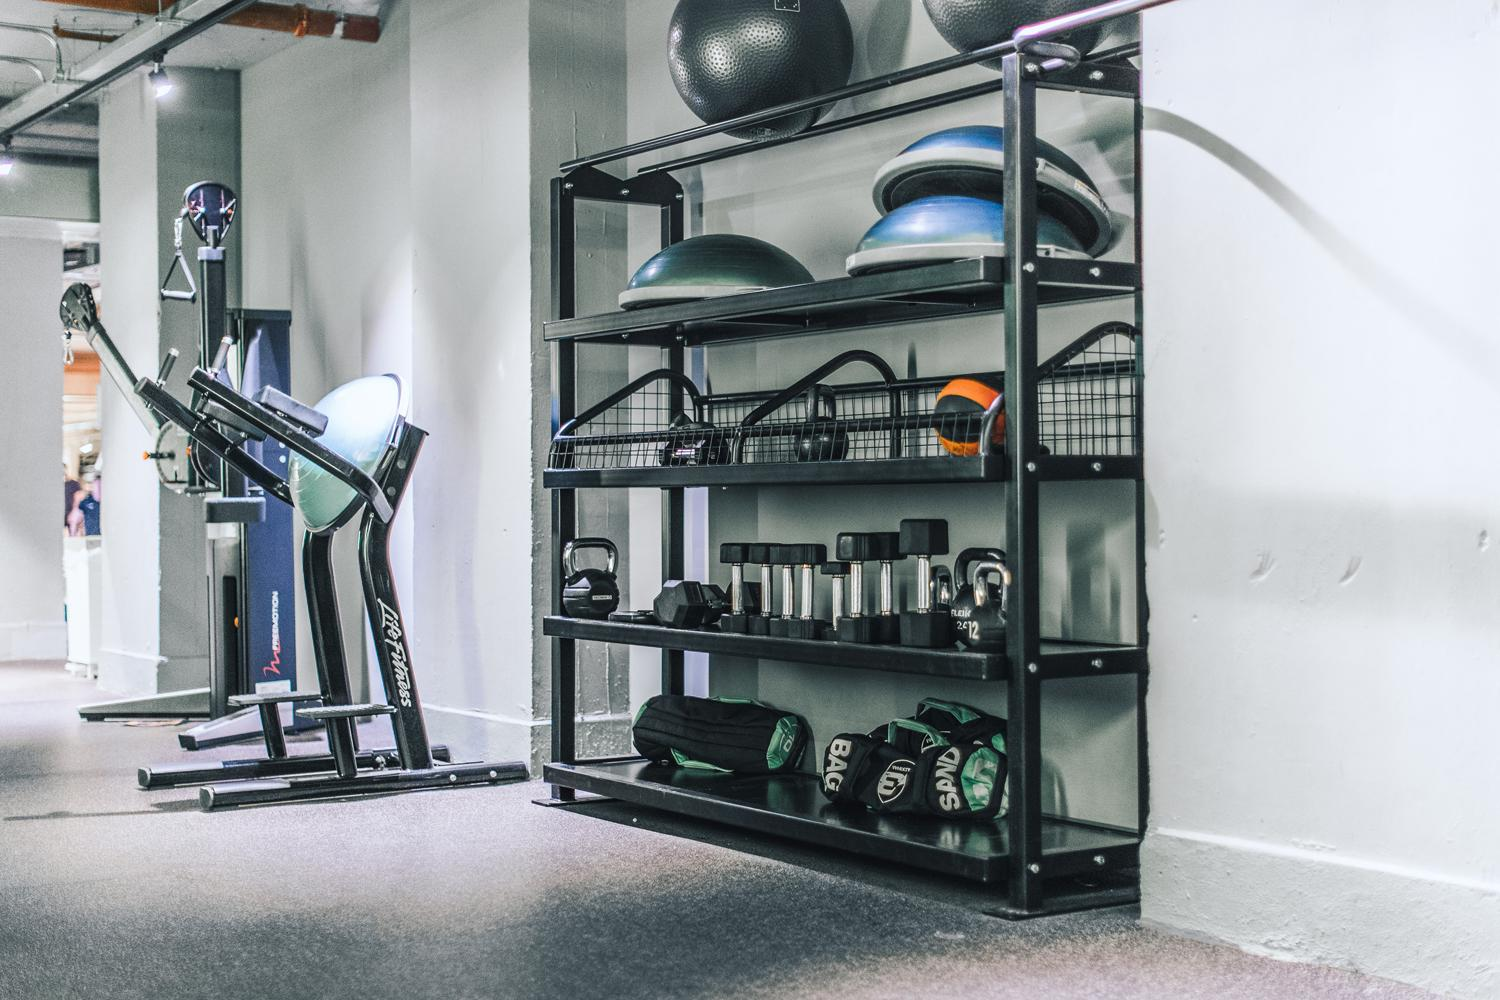 EXF work closely with clients to develop custom storage solutions